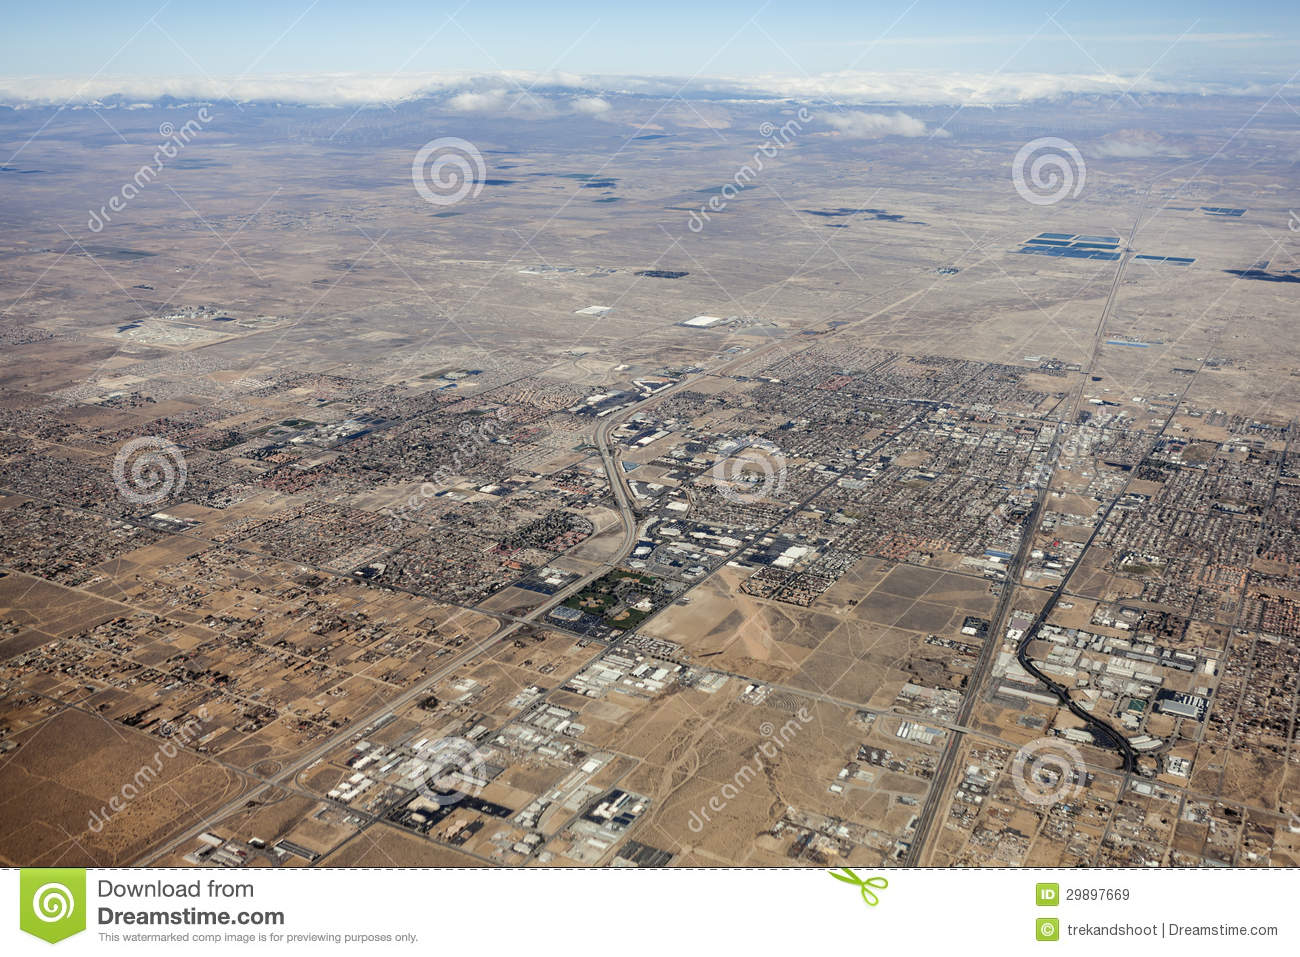 california fault map with Royalty Free Stock Images Aerial Lancaster California S Mojave Dersert Image29897669 on San Fernando Valley Map additionally Botec sanandreas also 4 07 geo Soils also Cotton Boll Early Oct 2012 1 additionally Hike The San Andreas Fault.